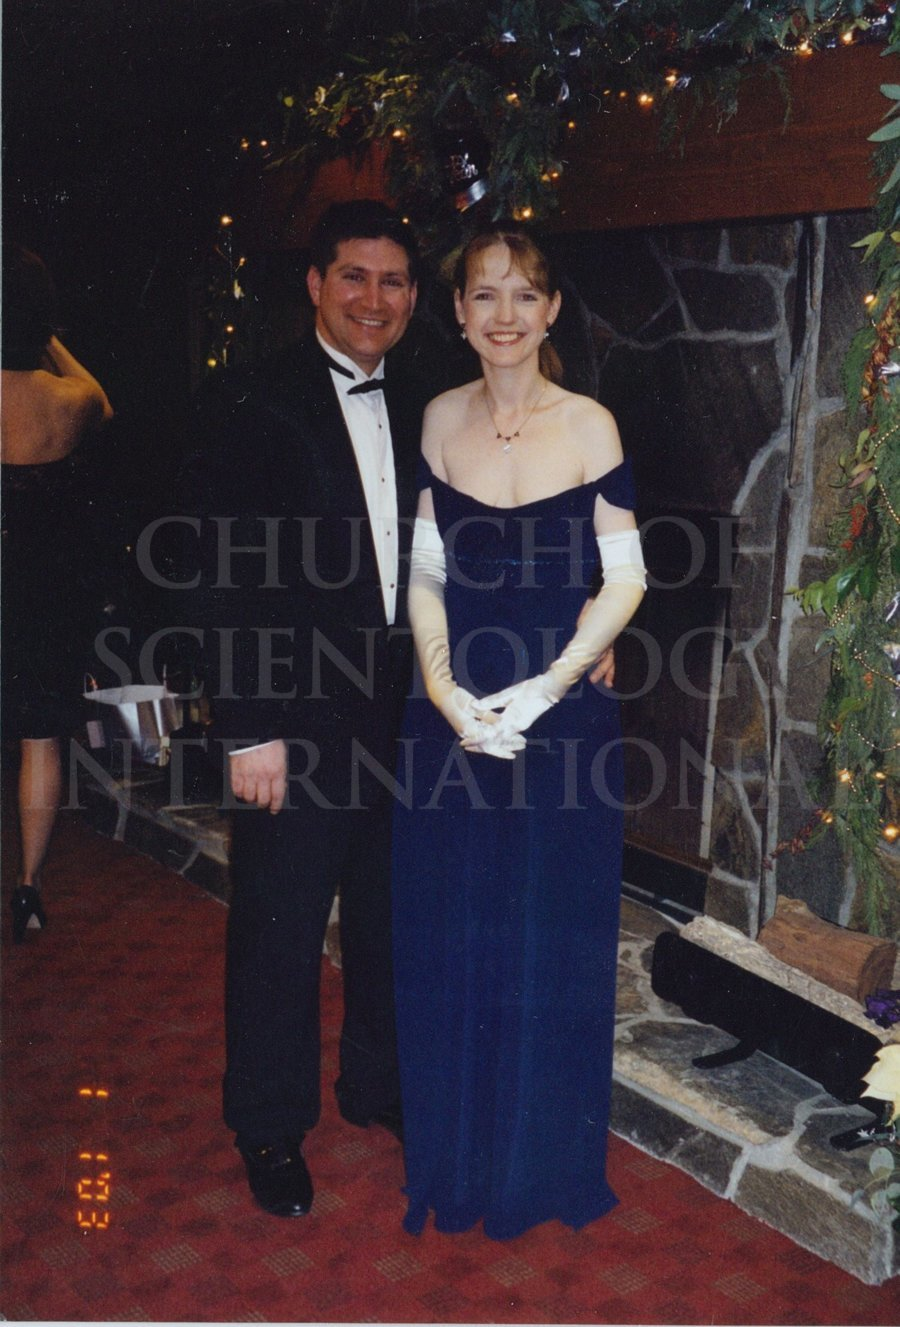 Marc and Claire enjoying New Year's 2003 at Golden Era